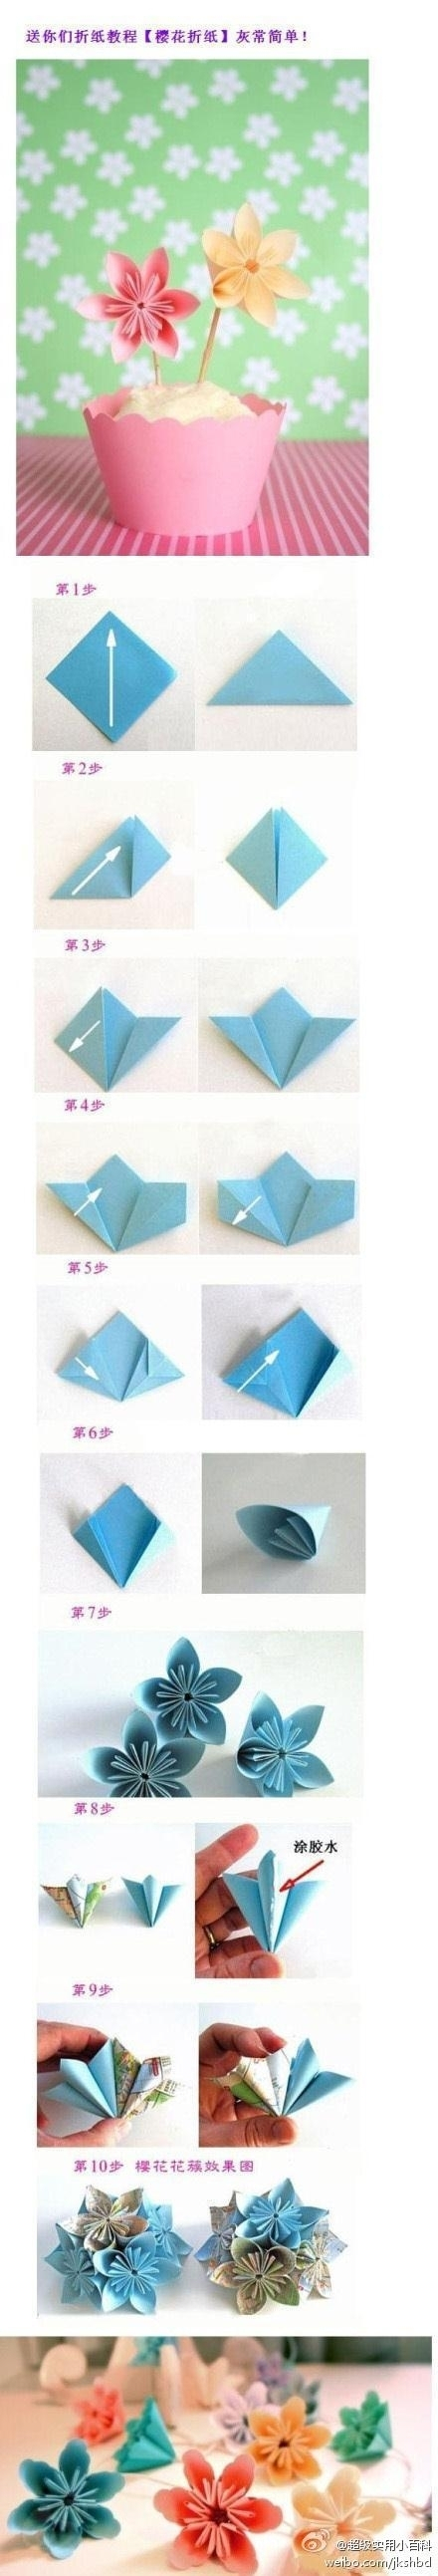 Pin by dorienne rogers on creativity pinterest origami and sarah pinyan posted origami flowers to her papercraft postboard via the juxtapost bookmarklet jeuxipadfo Gallery